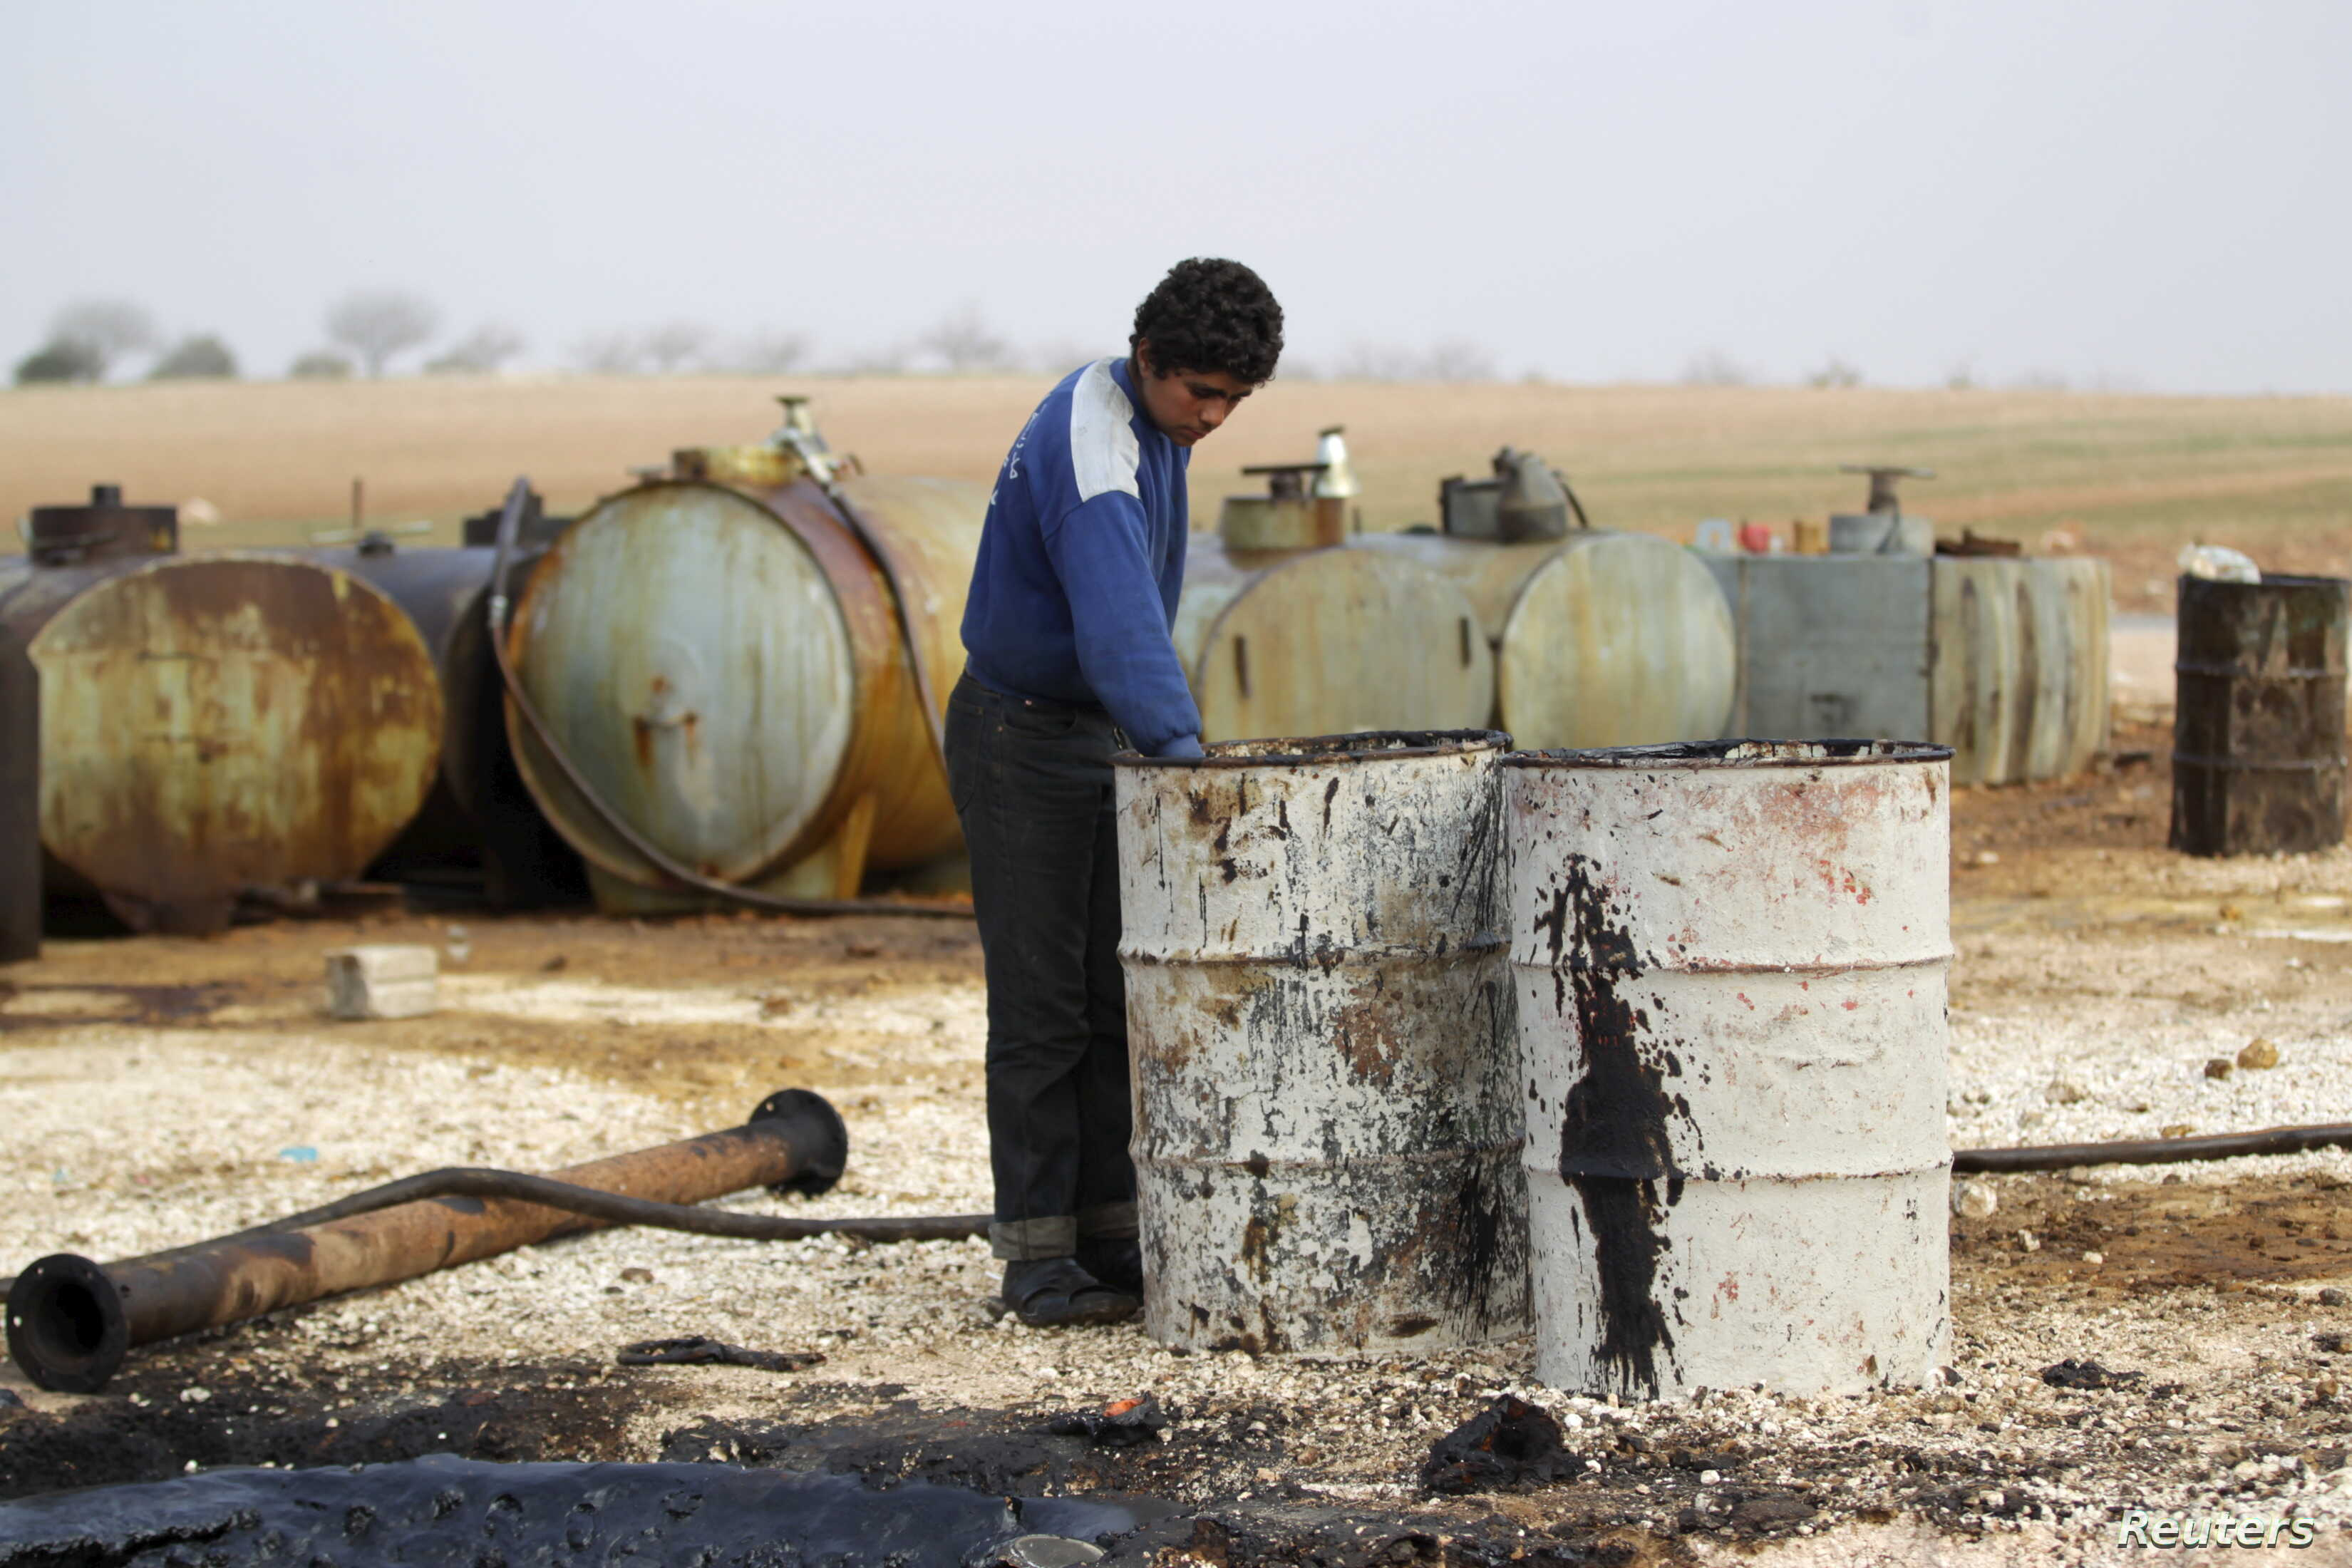 A youth works at a makeshift oil refinery in Syria that, according to its owner, gets the crude oil from Islamic State-controlled areas of Syria and Iraq.